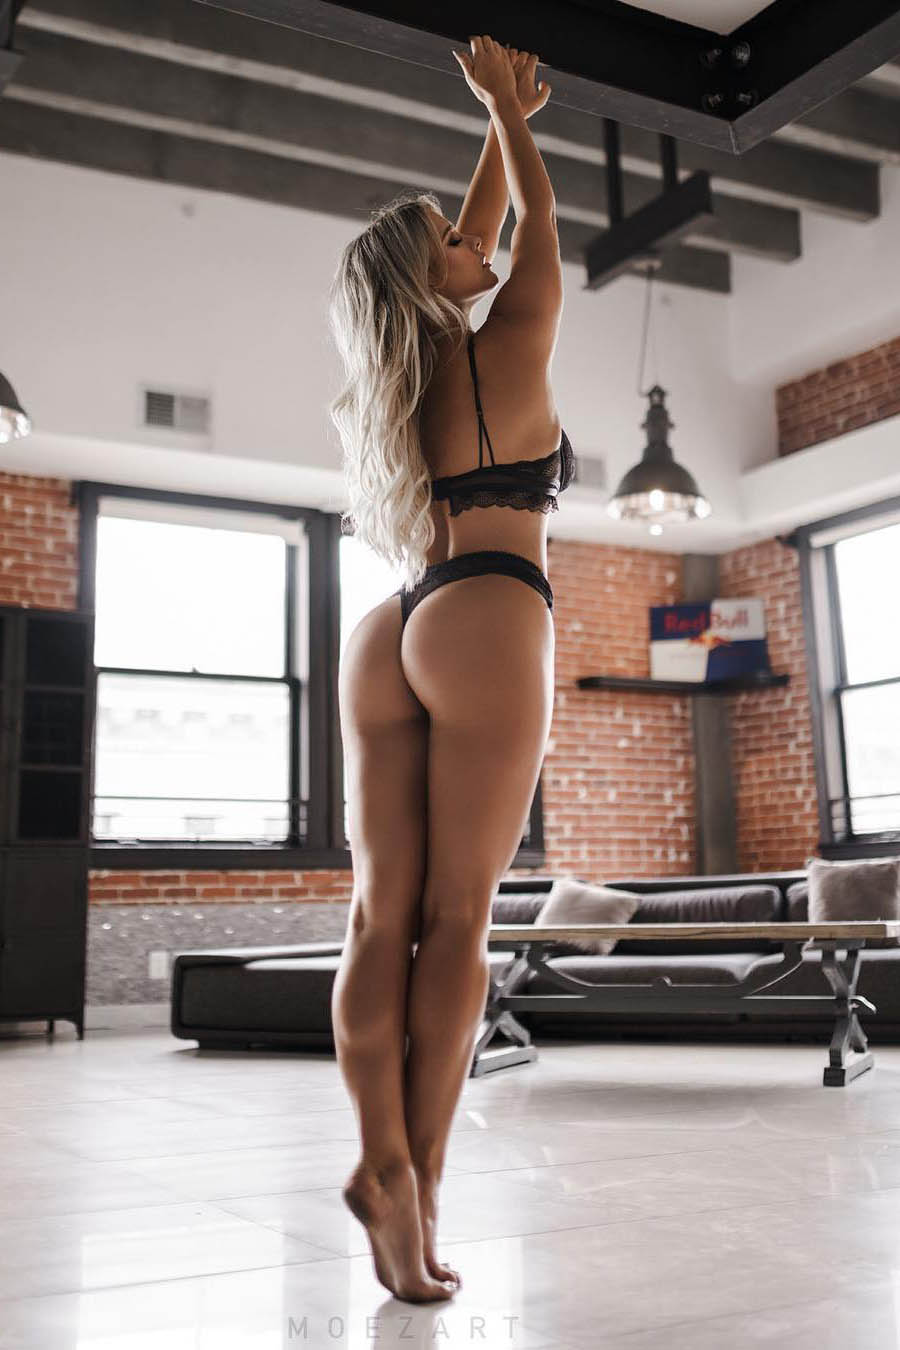 Konni darling blonde